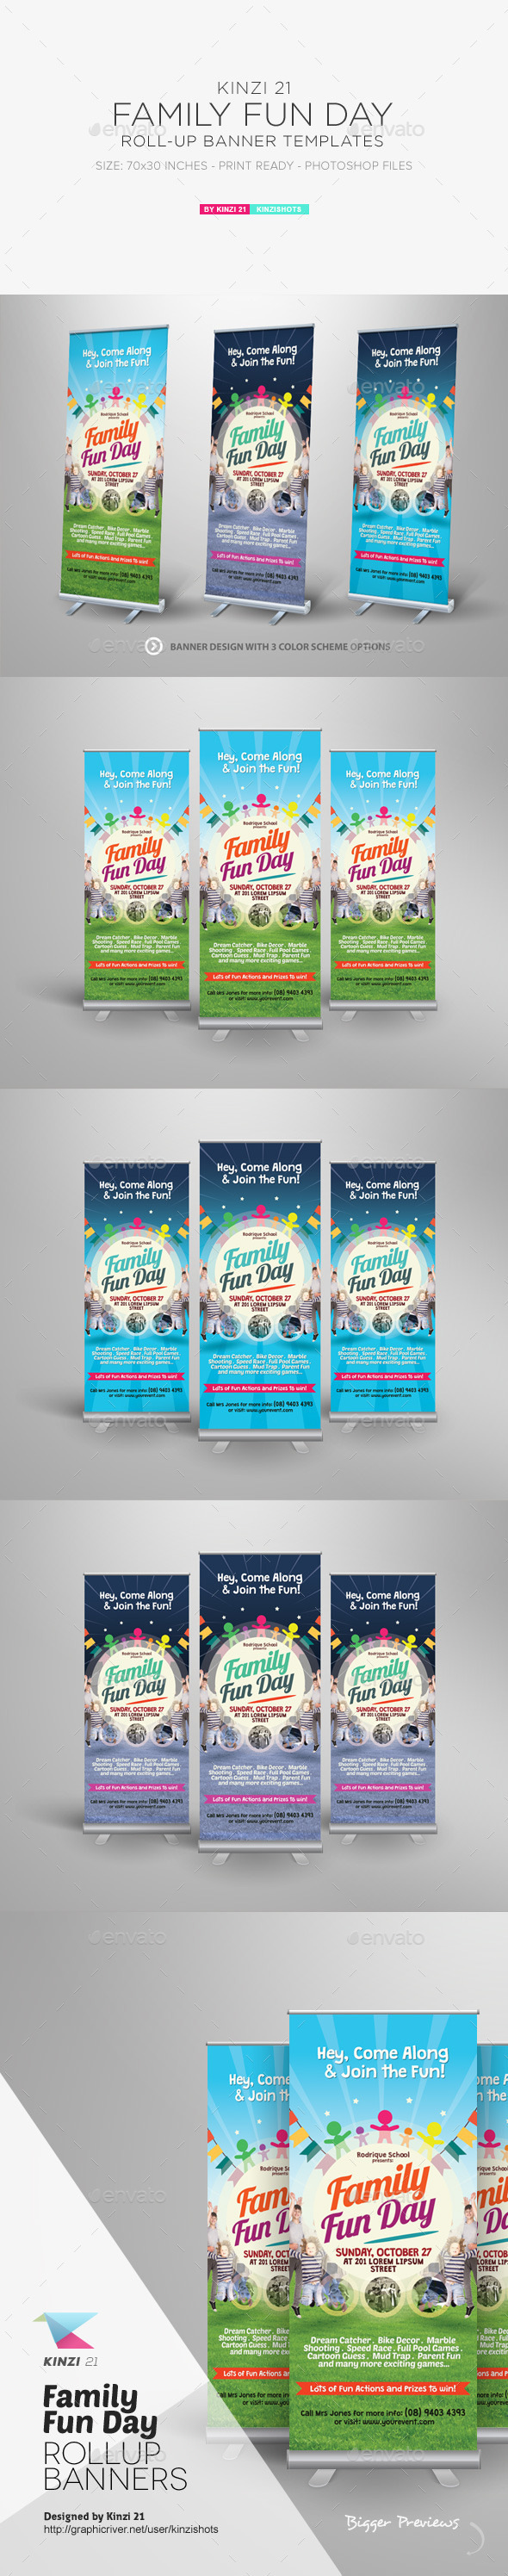 Family Fun Day Roll-up Banners - Signage Print Templates